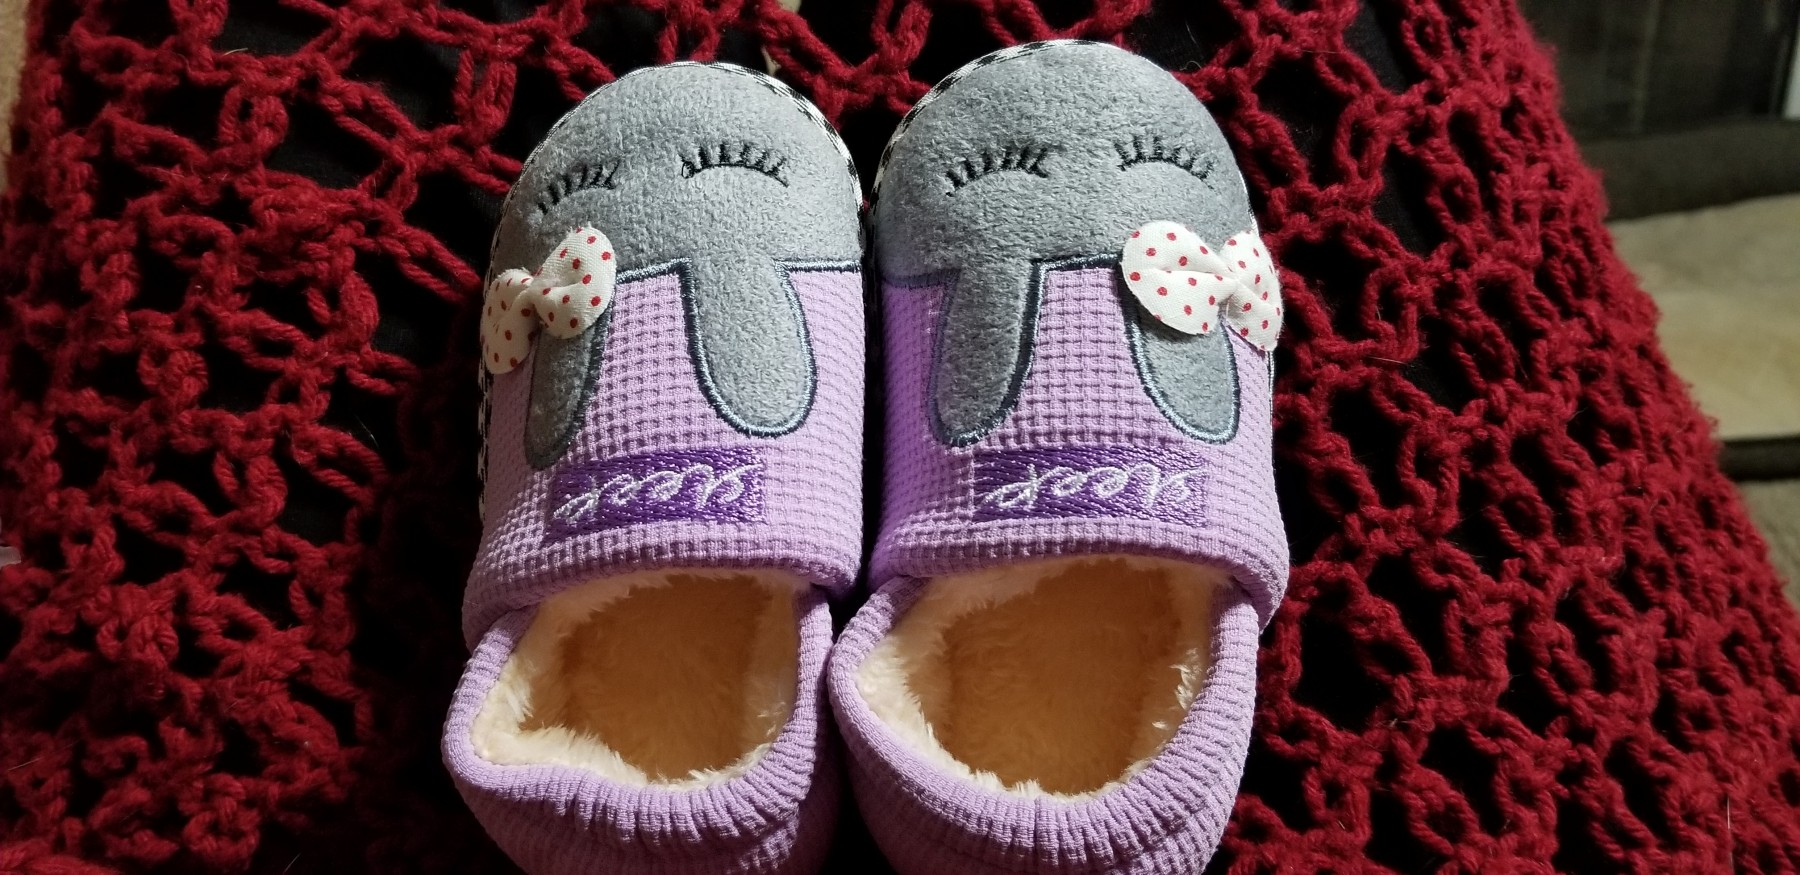 Adorable slippers!